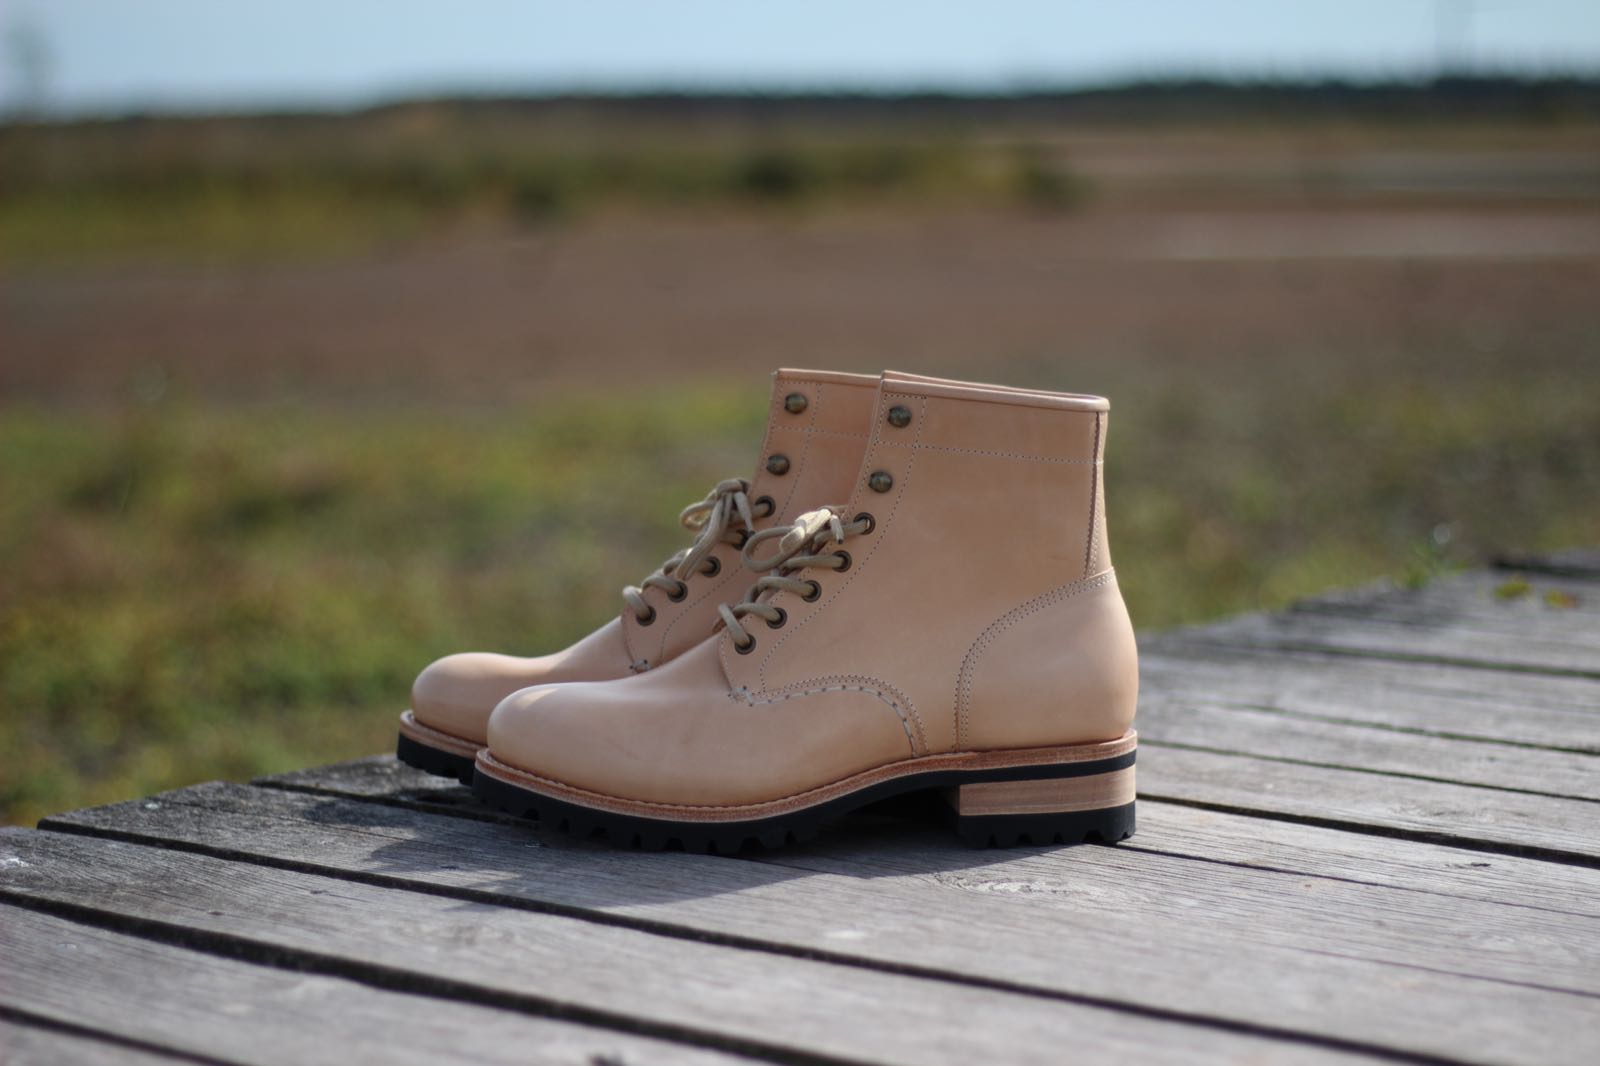 We Proudly Present Our New Heritage Boots